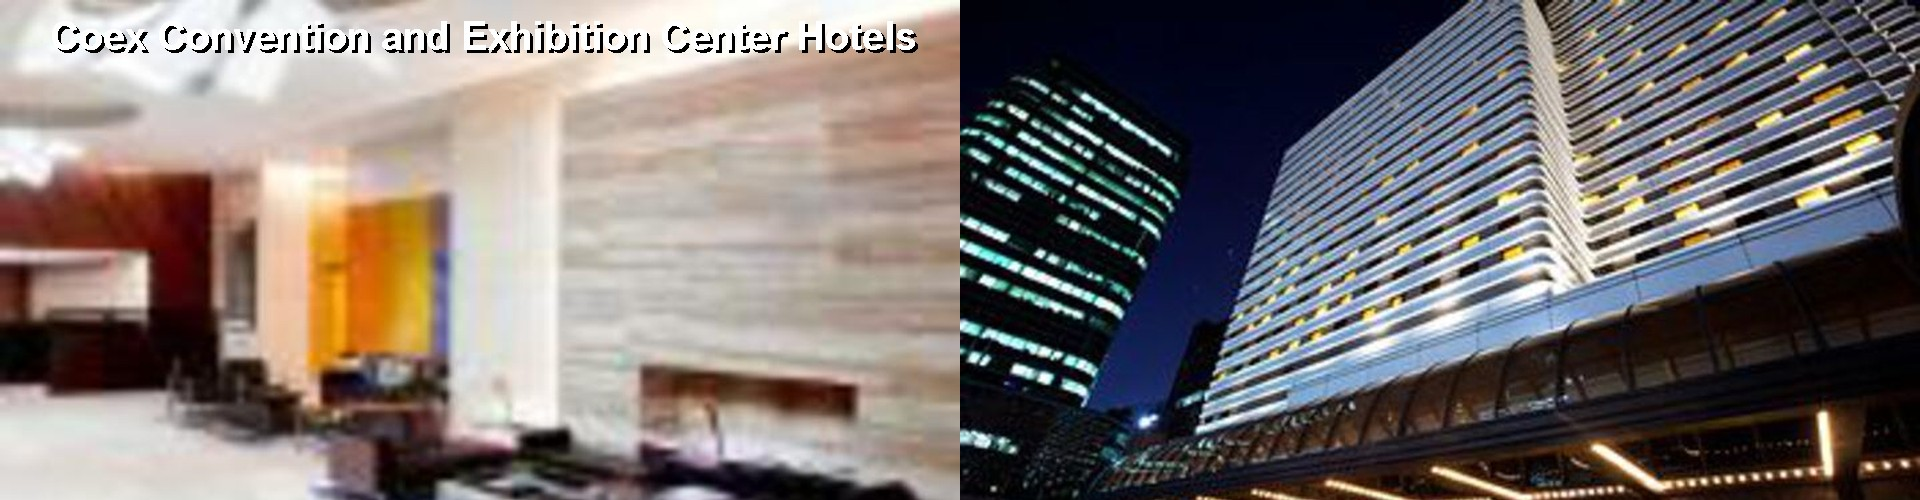 5 Best Hotels near Coex Convention and Exhibition Center